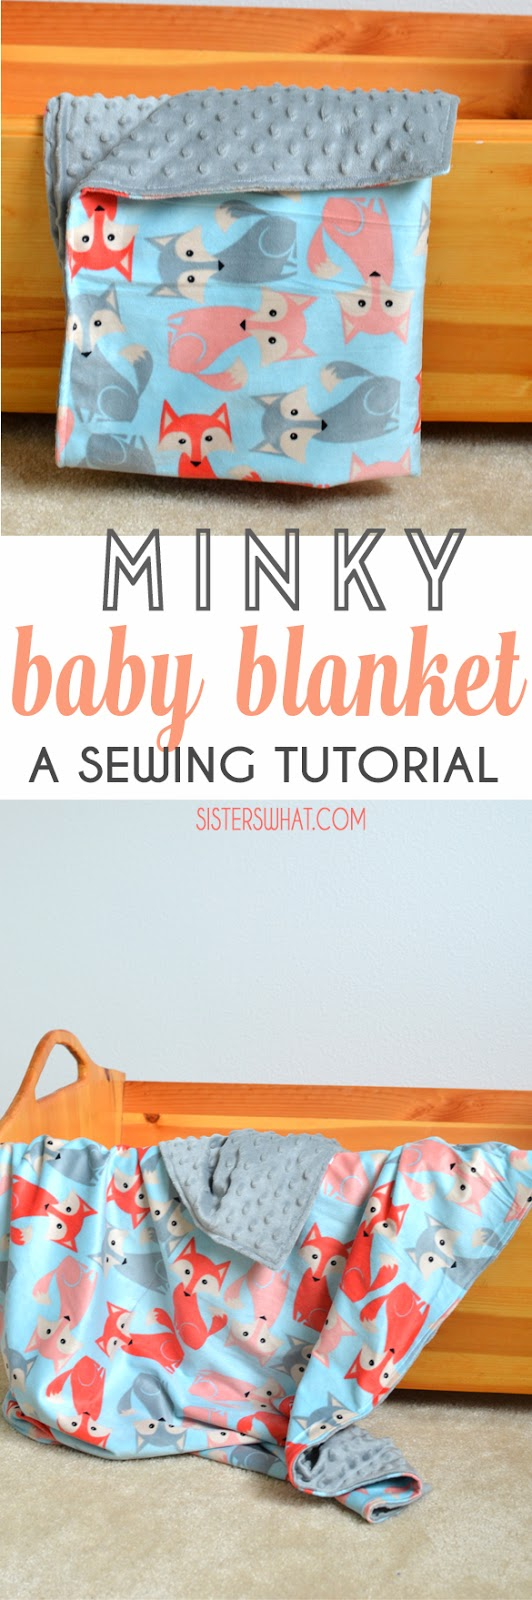 easy baby blanket tutorial for a minky baby blanket and flannel baby blanket perfect baby shower gift